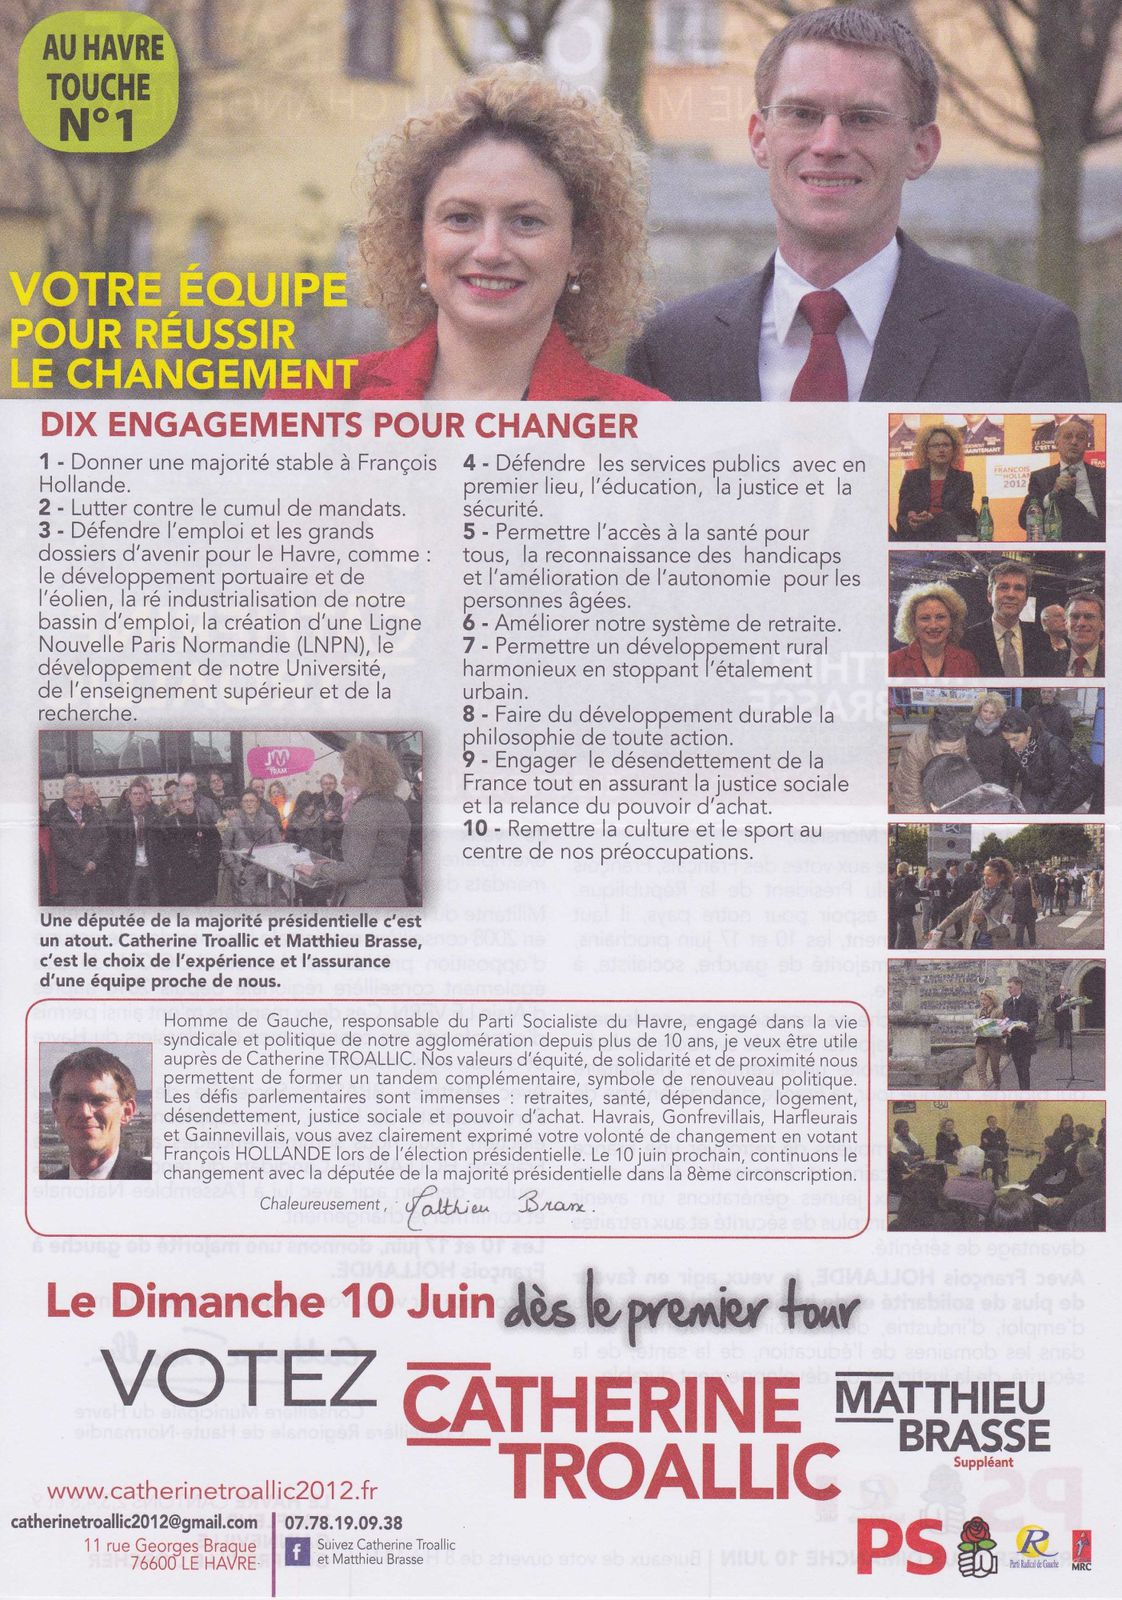 6-2012-Legislative-8-circonscription-Seine-Maritime-PS.jpg